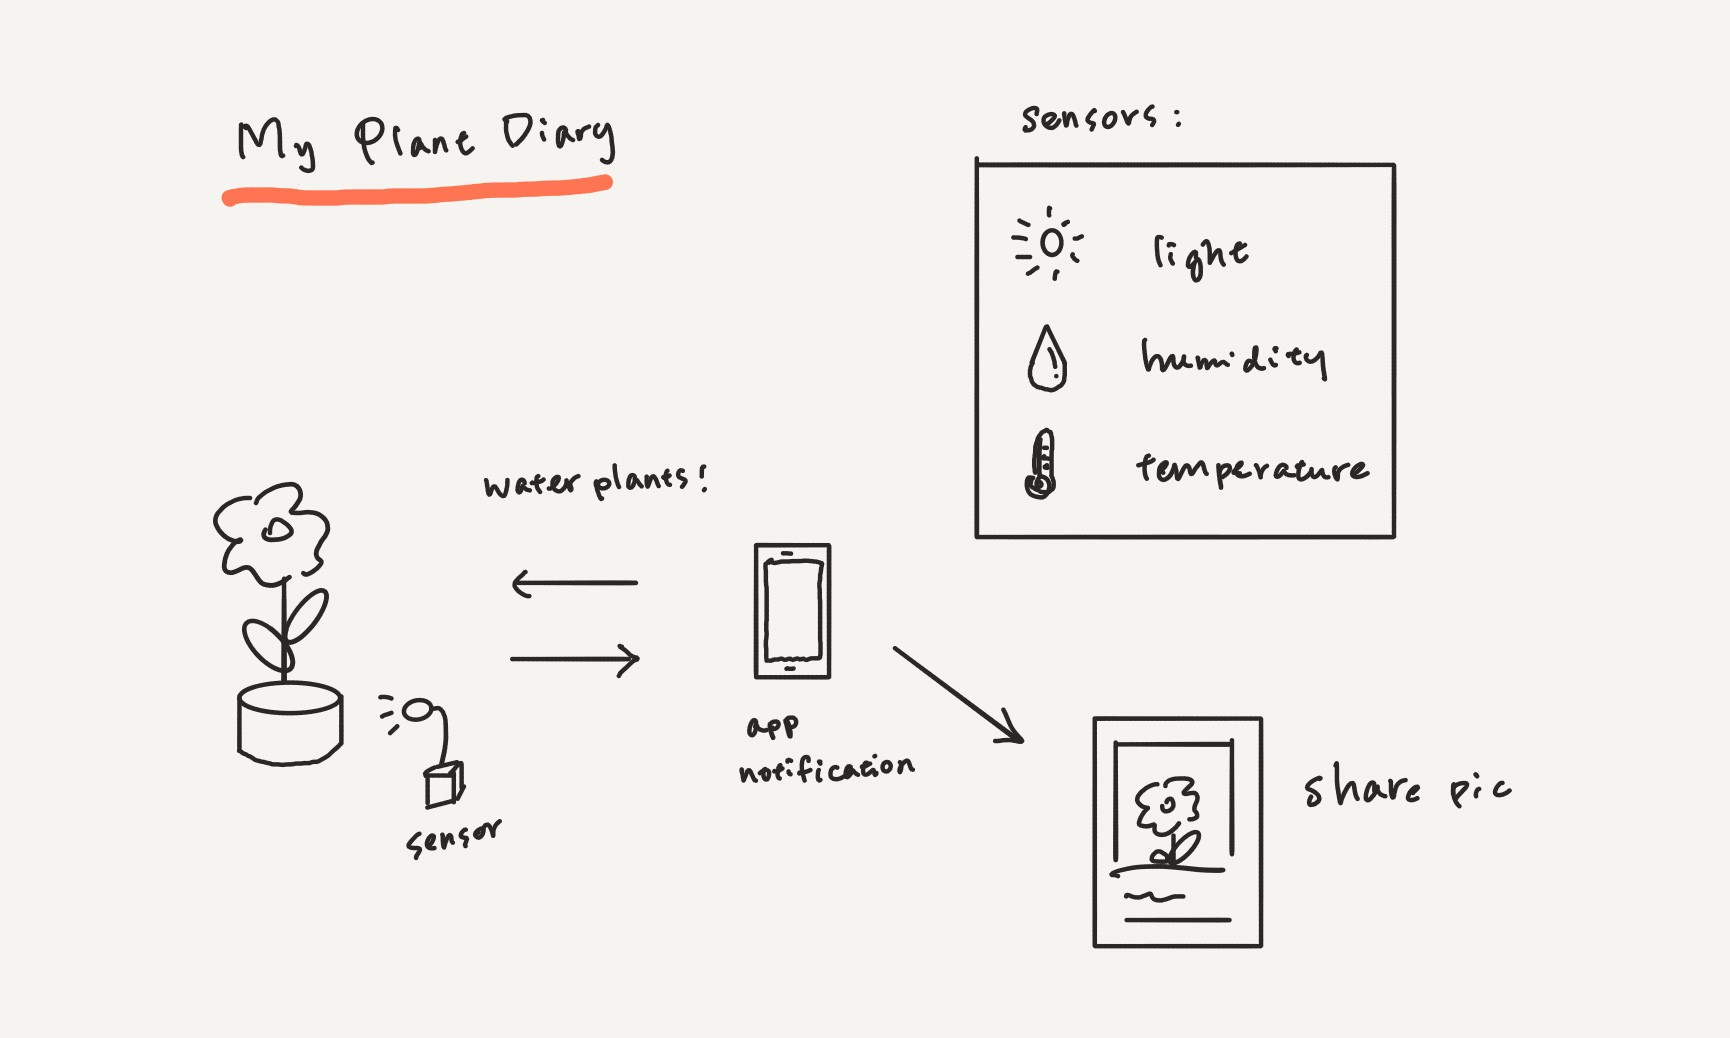 The detailed project proposal for biodesigning the future of food heres the diagram we came up with to explain how we would combine an arduino board and a mobile app to make an indoor growing kit ccuart Gallery